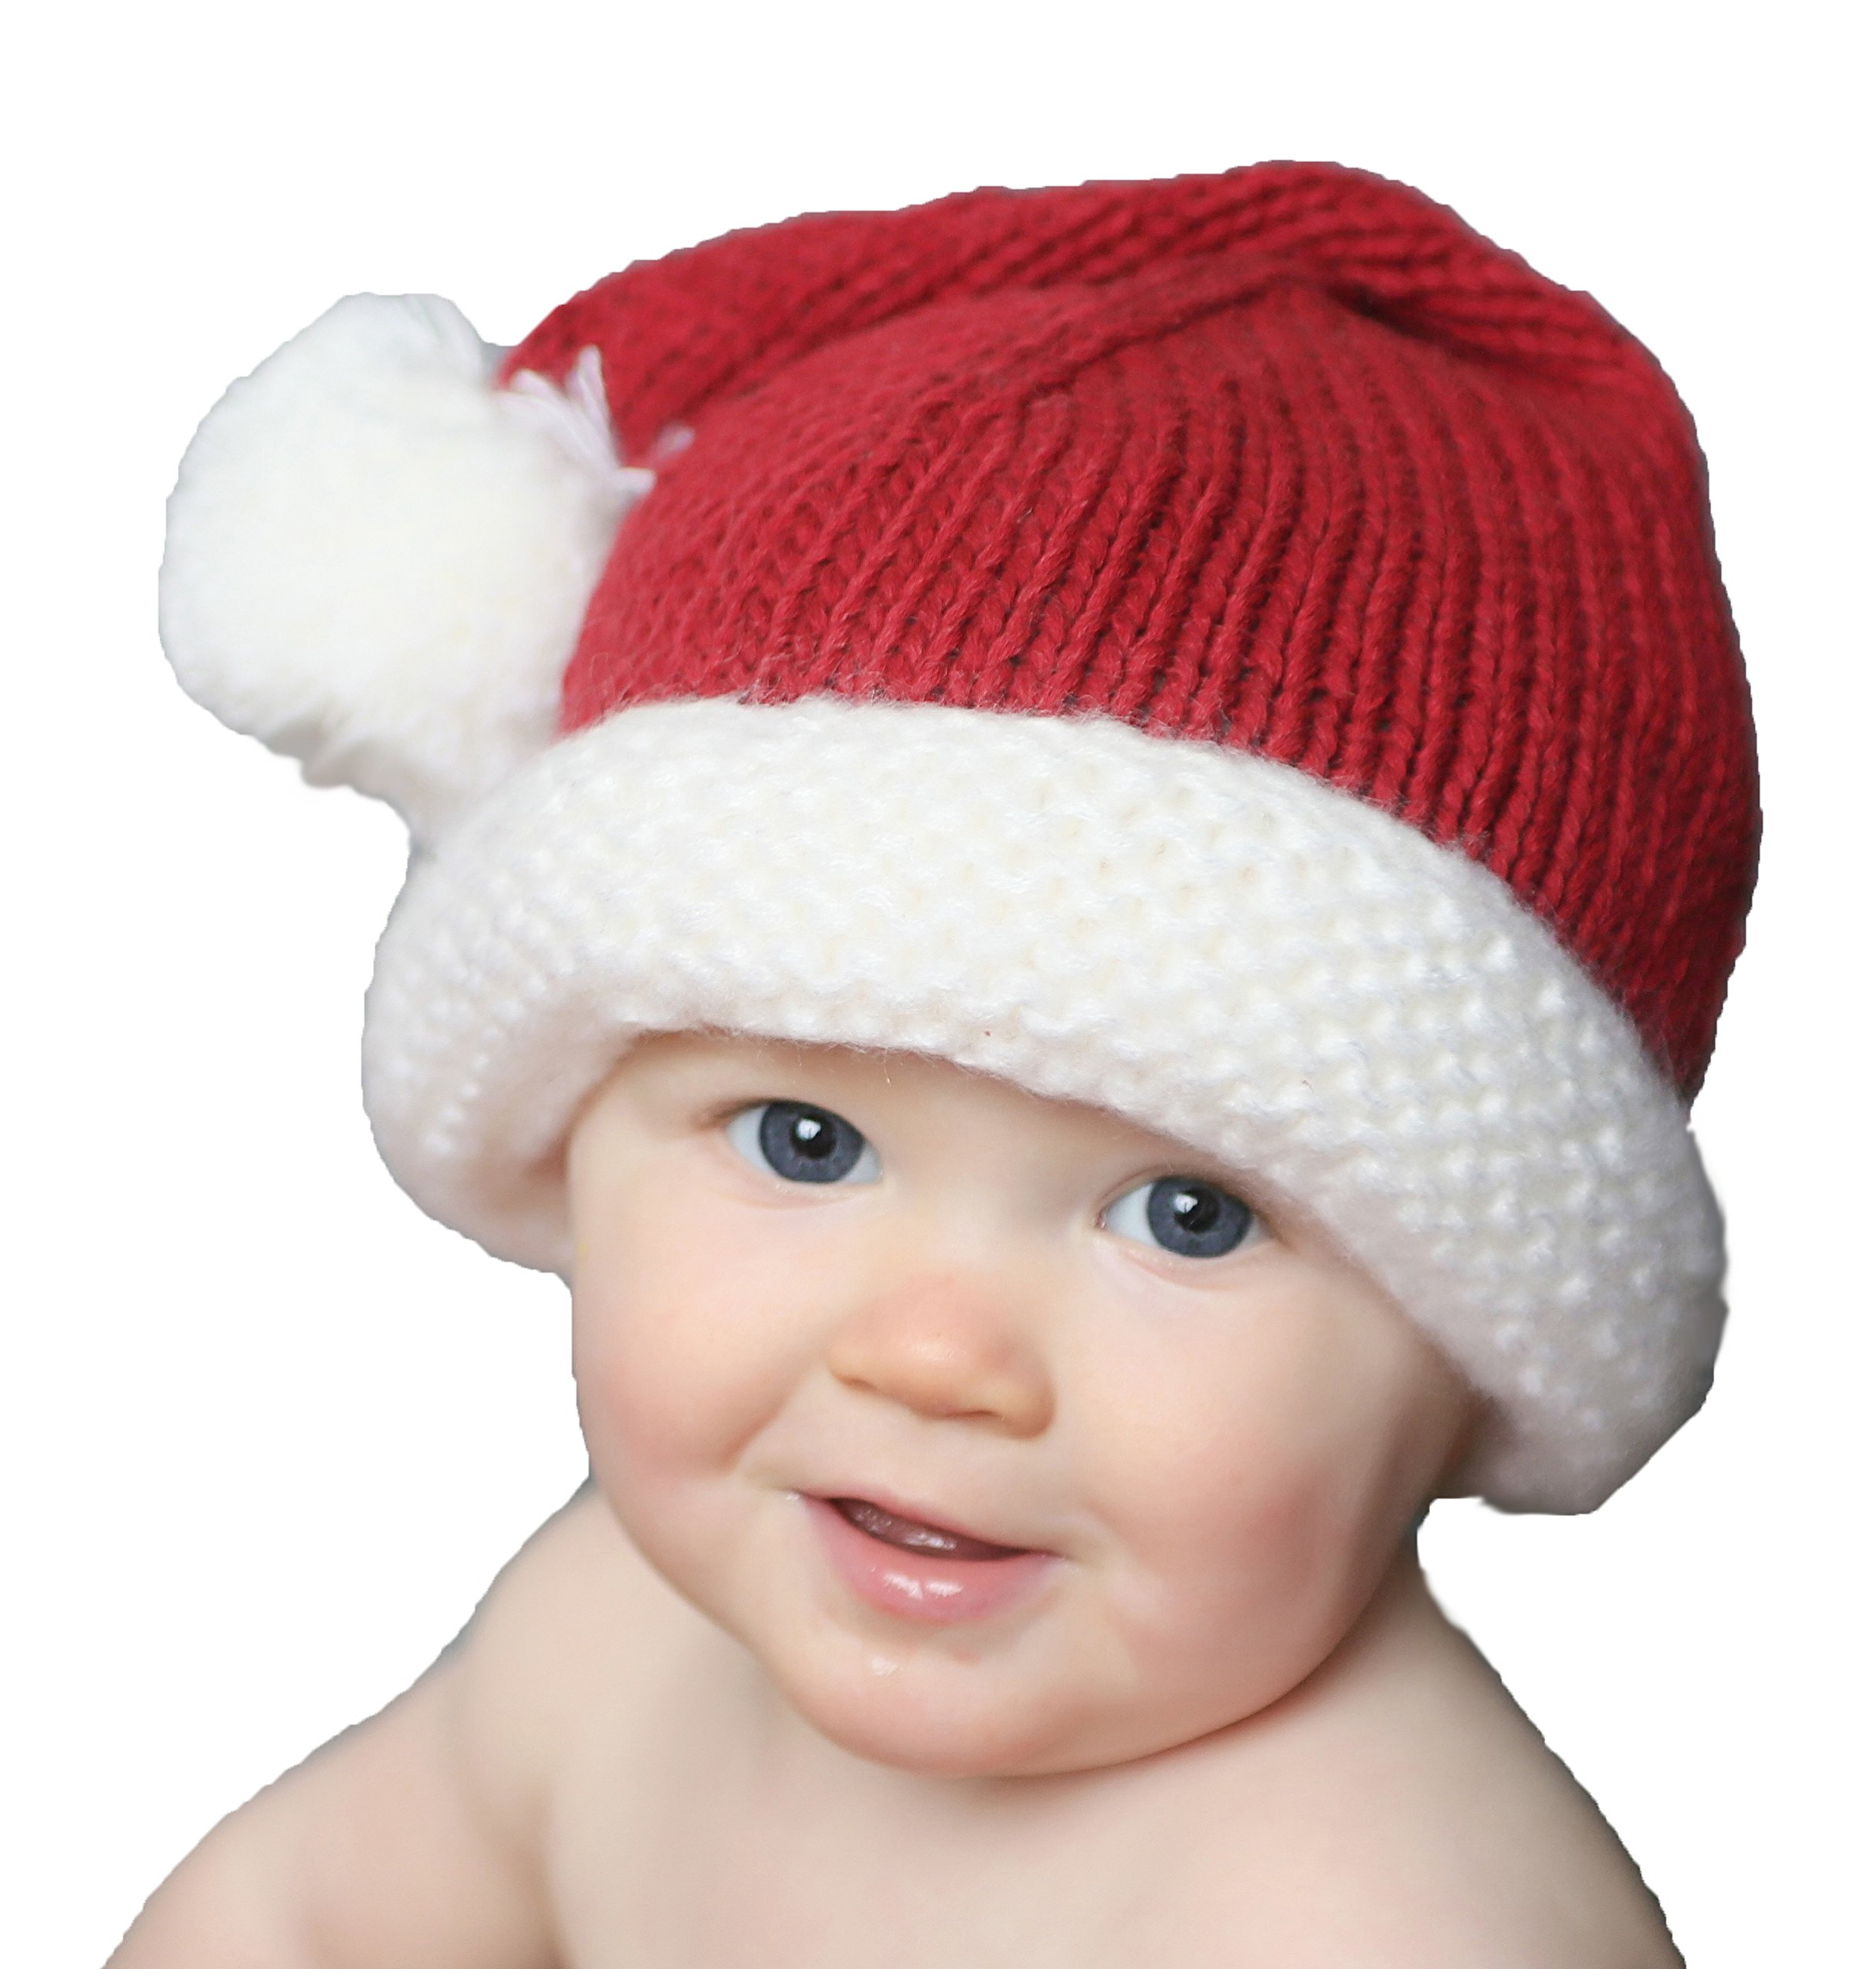 Huggalugs Snowy Santa Baby Toddler or Adult Stocking Hat S Red by Huggalugs